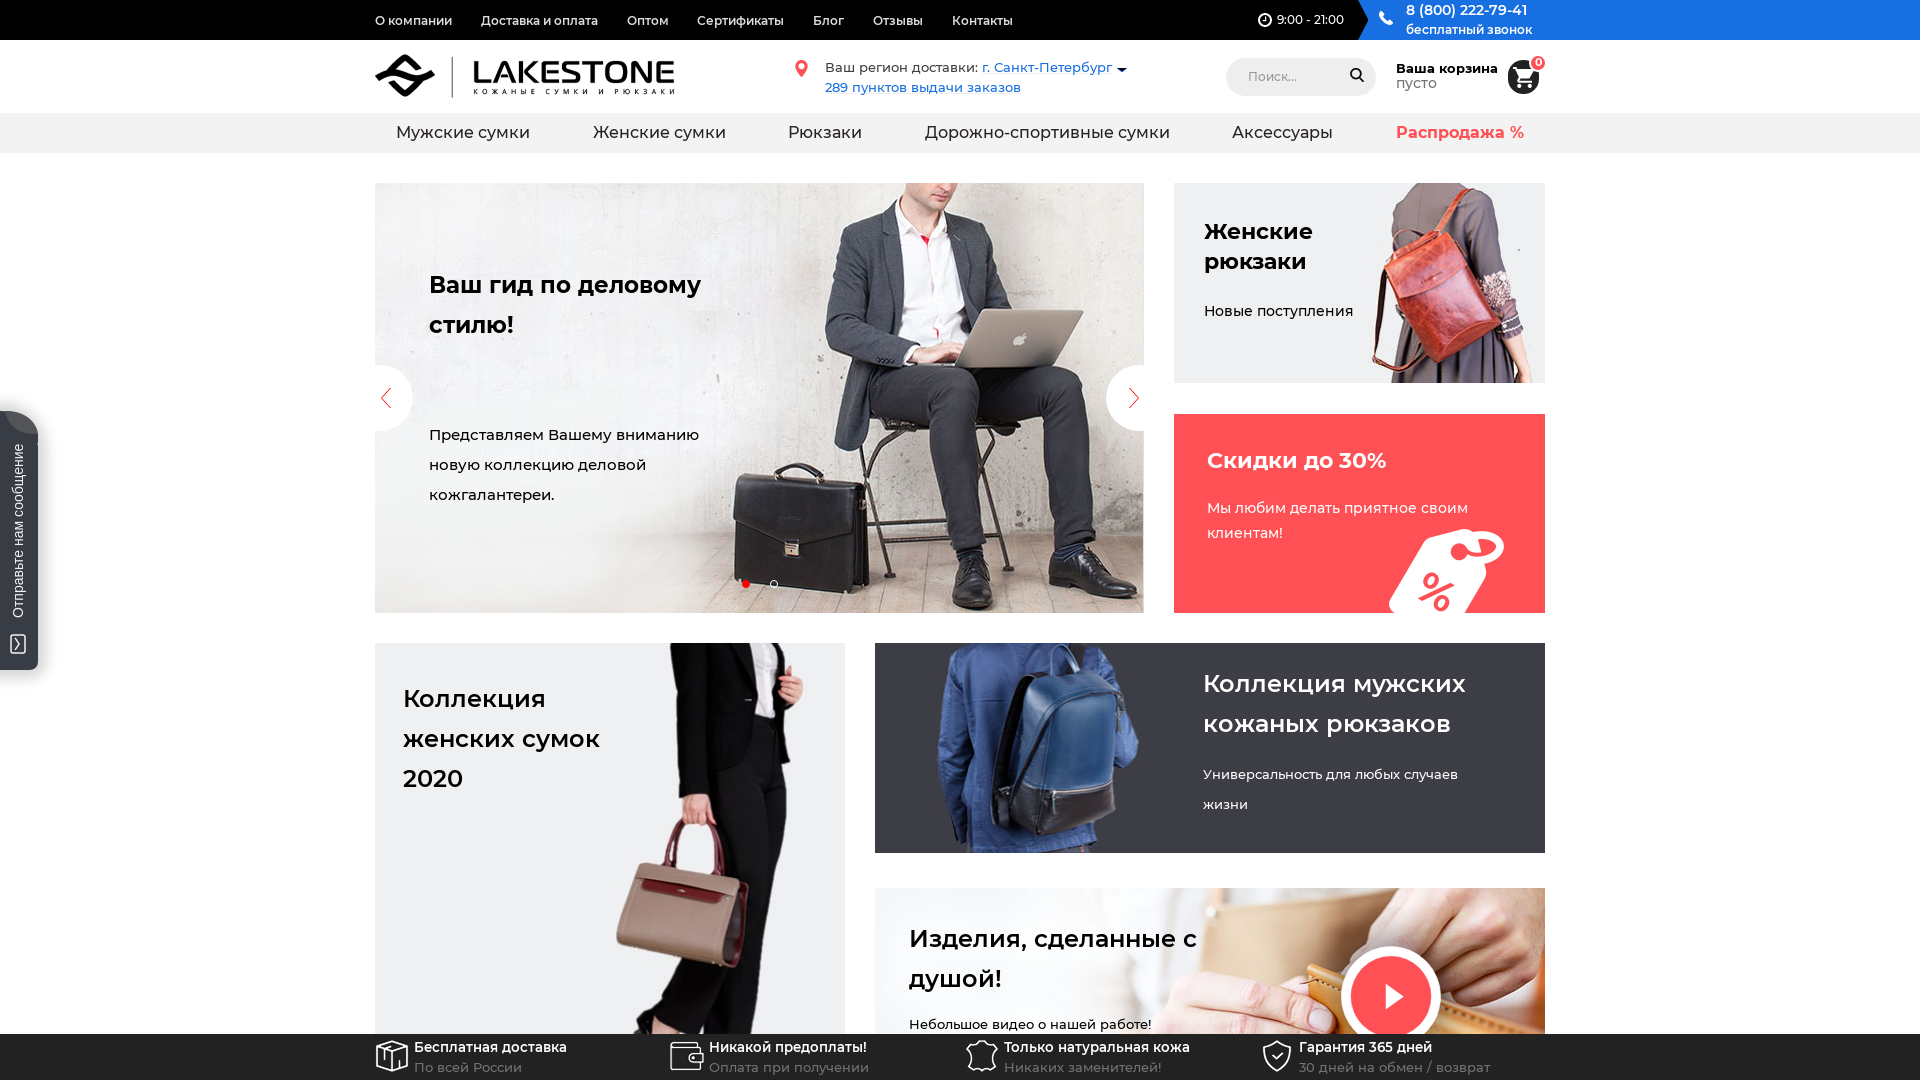 Lakestone website